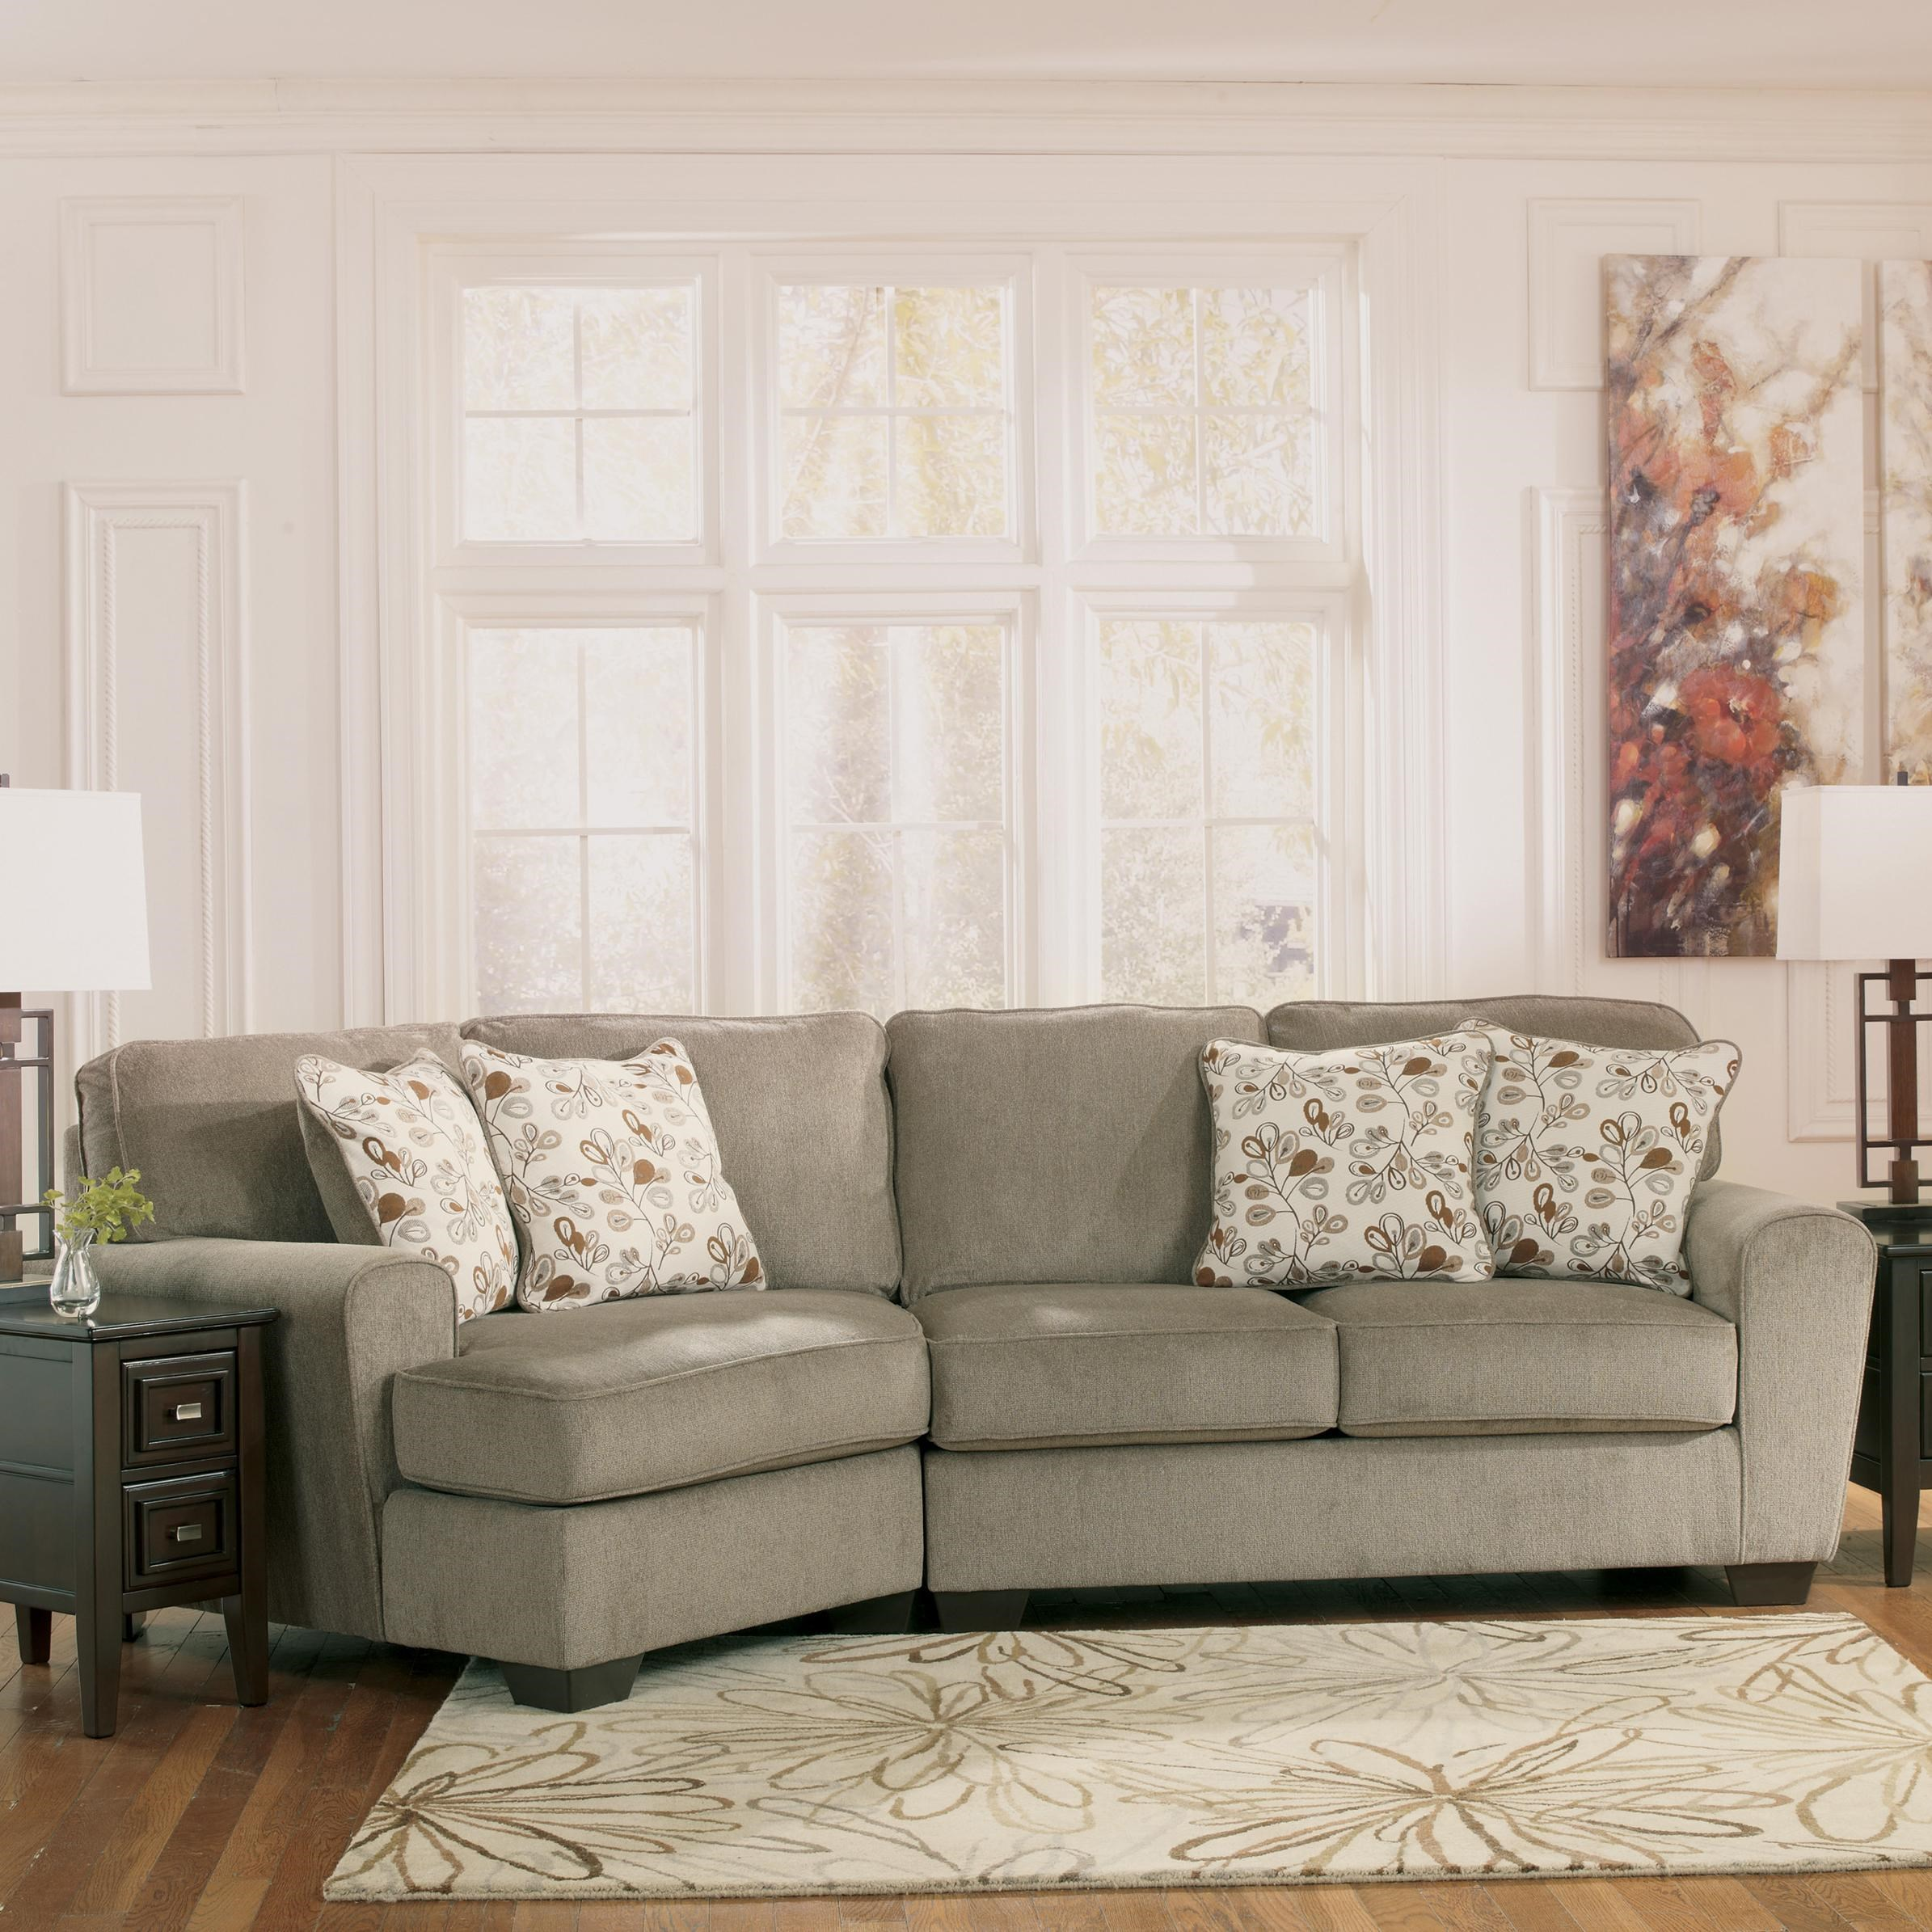 Ashley Furniture Patola Park   Patina 2 Piece Sectional With Left Cuddler    Van Hill Furniture   Sofa Sectional